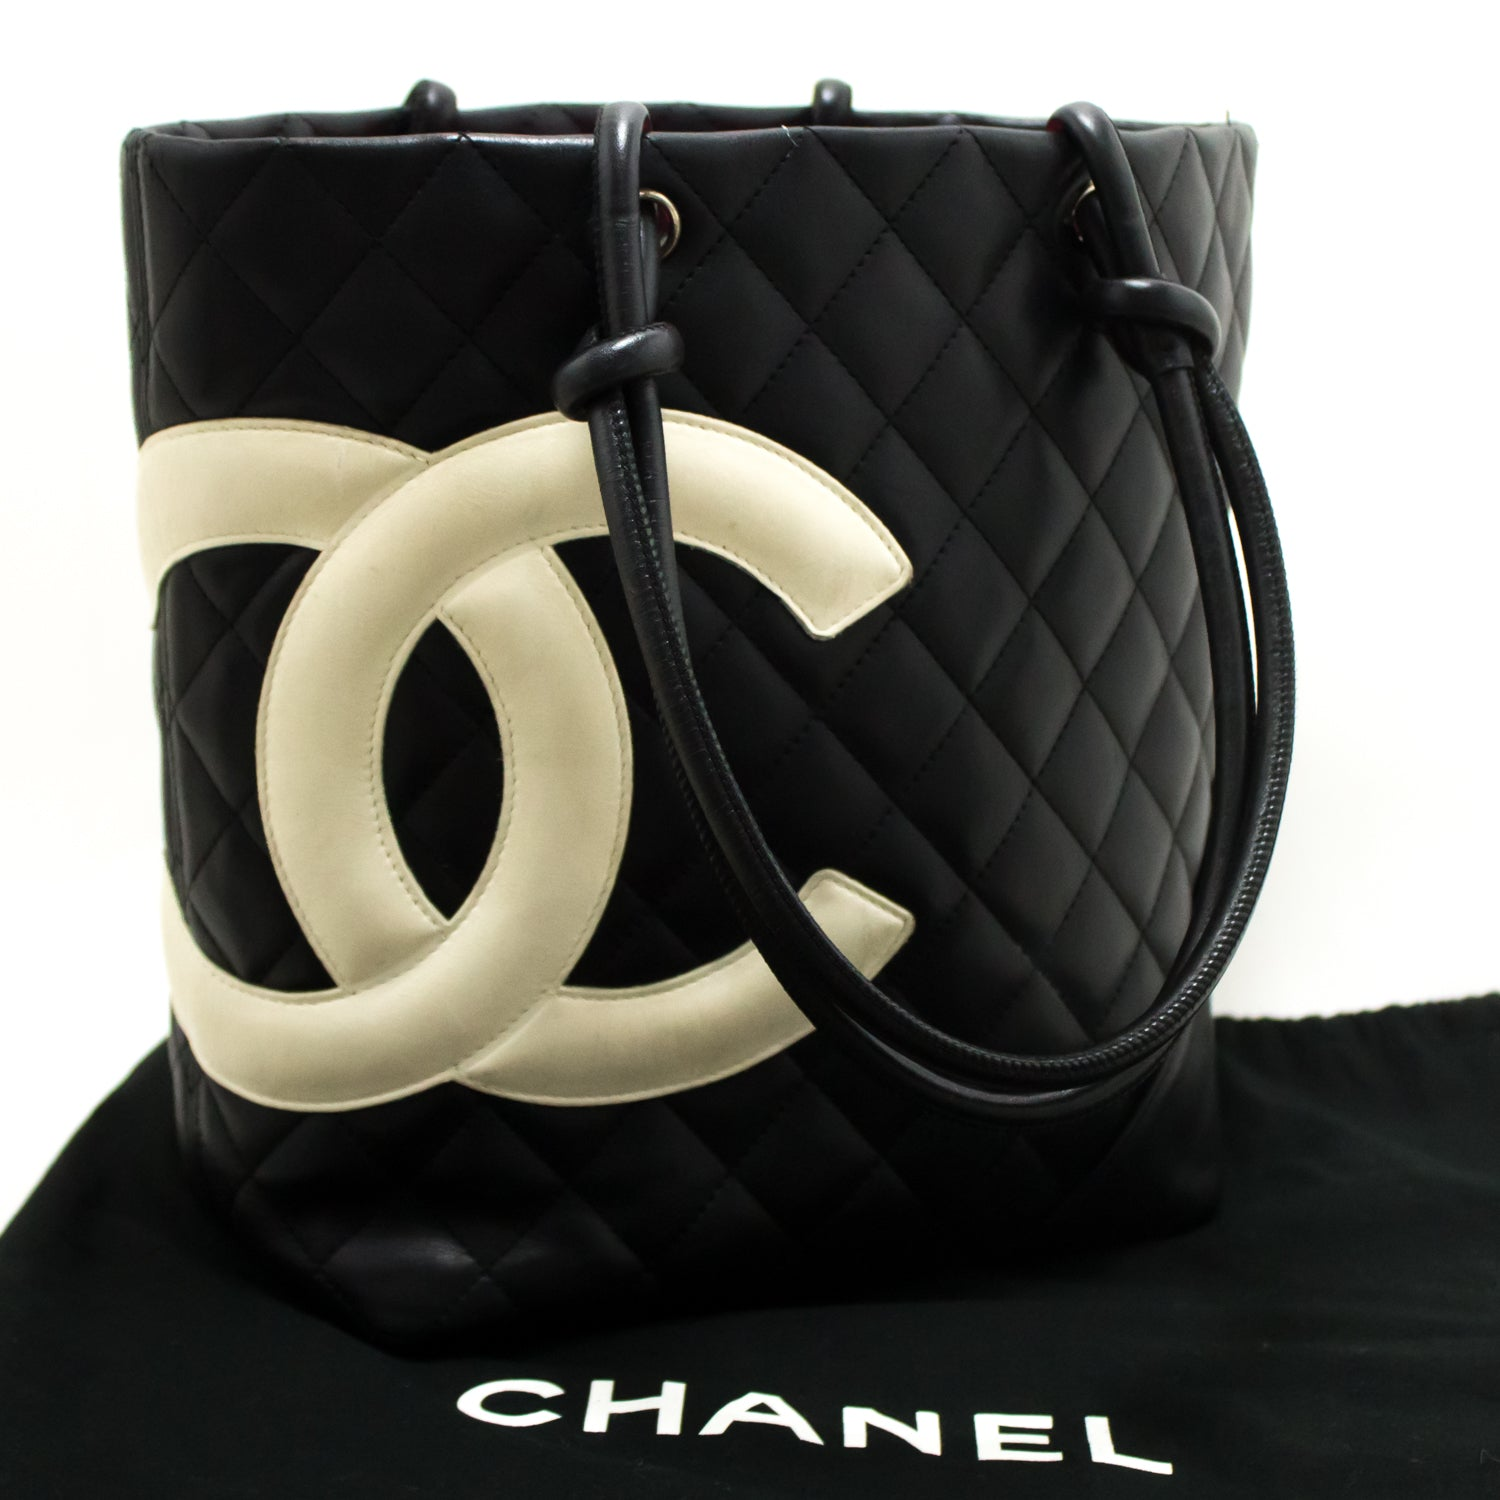 1455331b63df ... CHANEL Cambon Tote Small Shoulder Bag Black White Quilted Calfskin m95- Chanel-hannari- ...